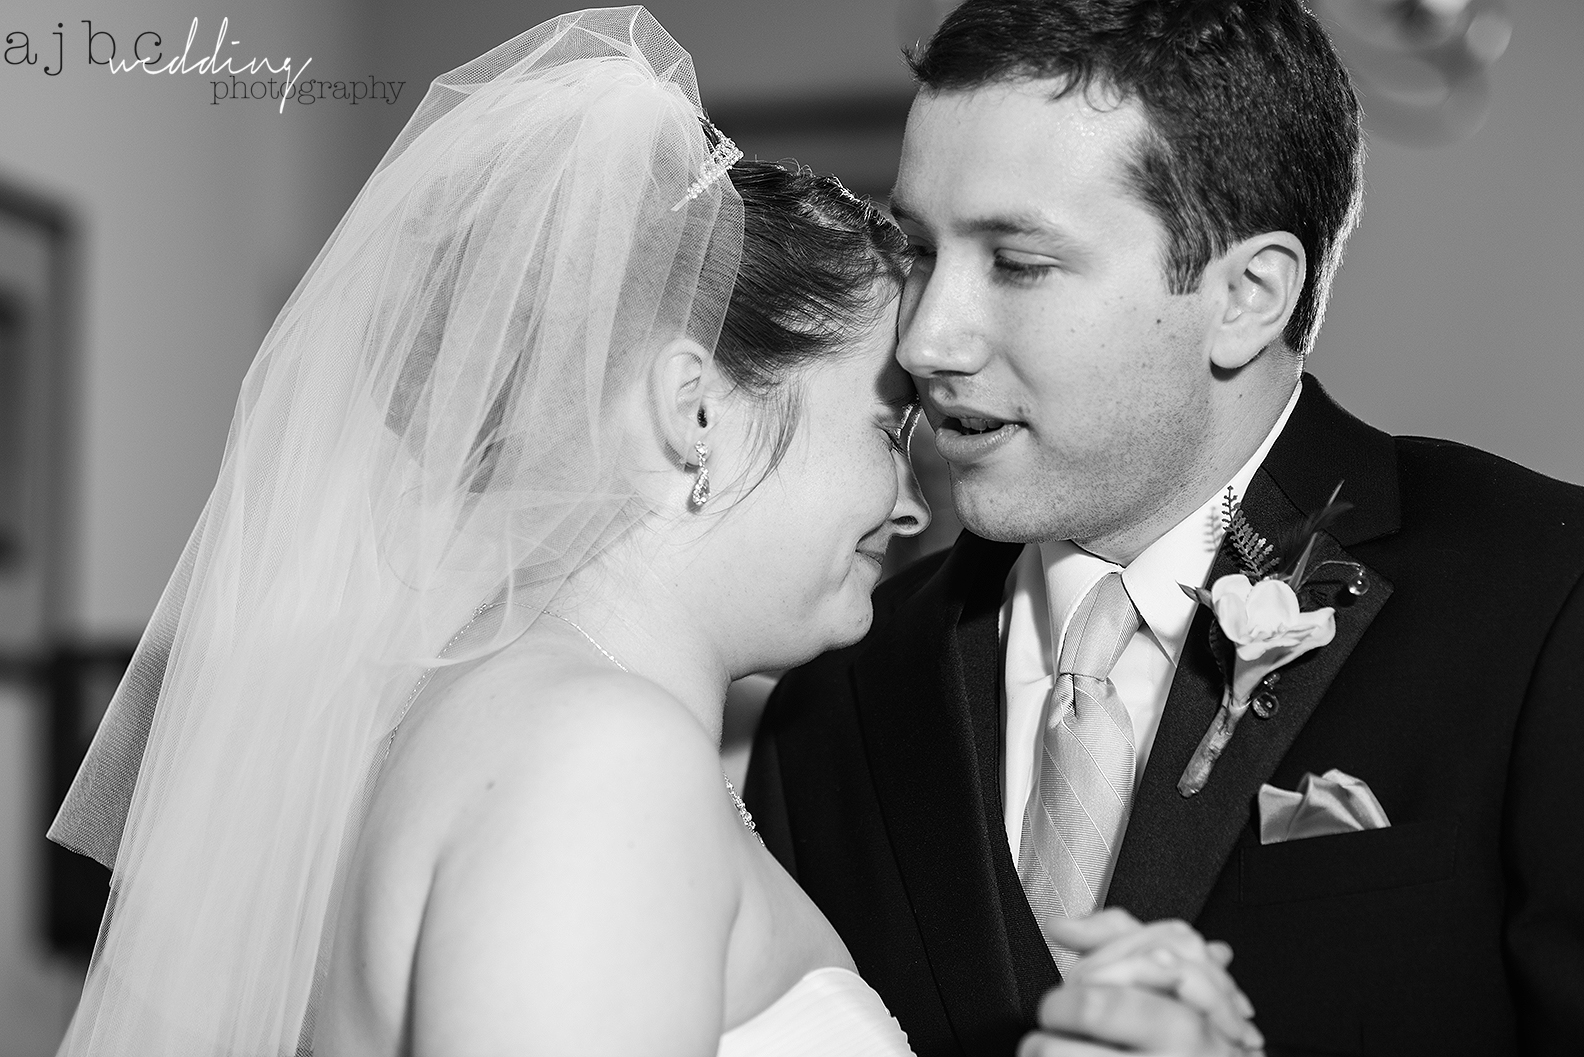 ajbcphotography-port-huron-michigan-wedding-photographer-love-bride-groom-family-michigan-wedding-photographer-first-dance.jpg